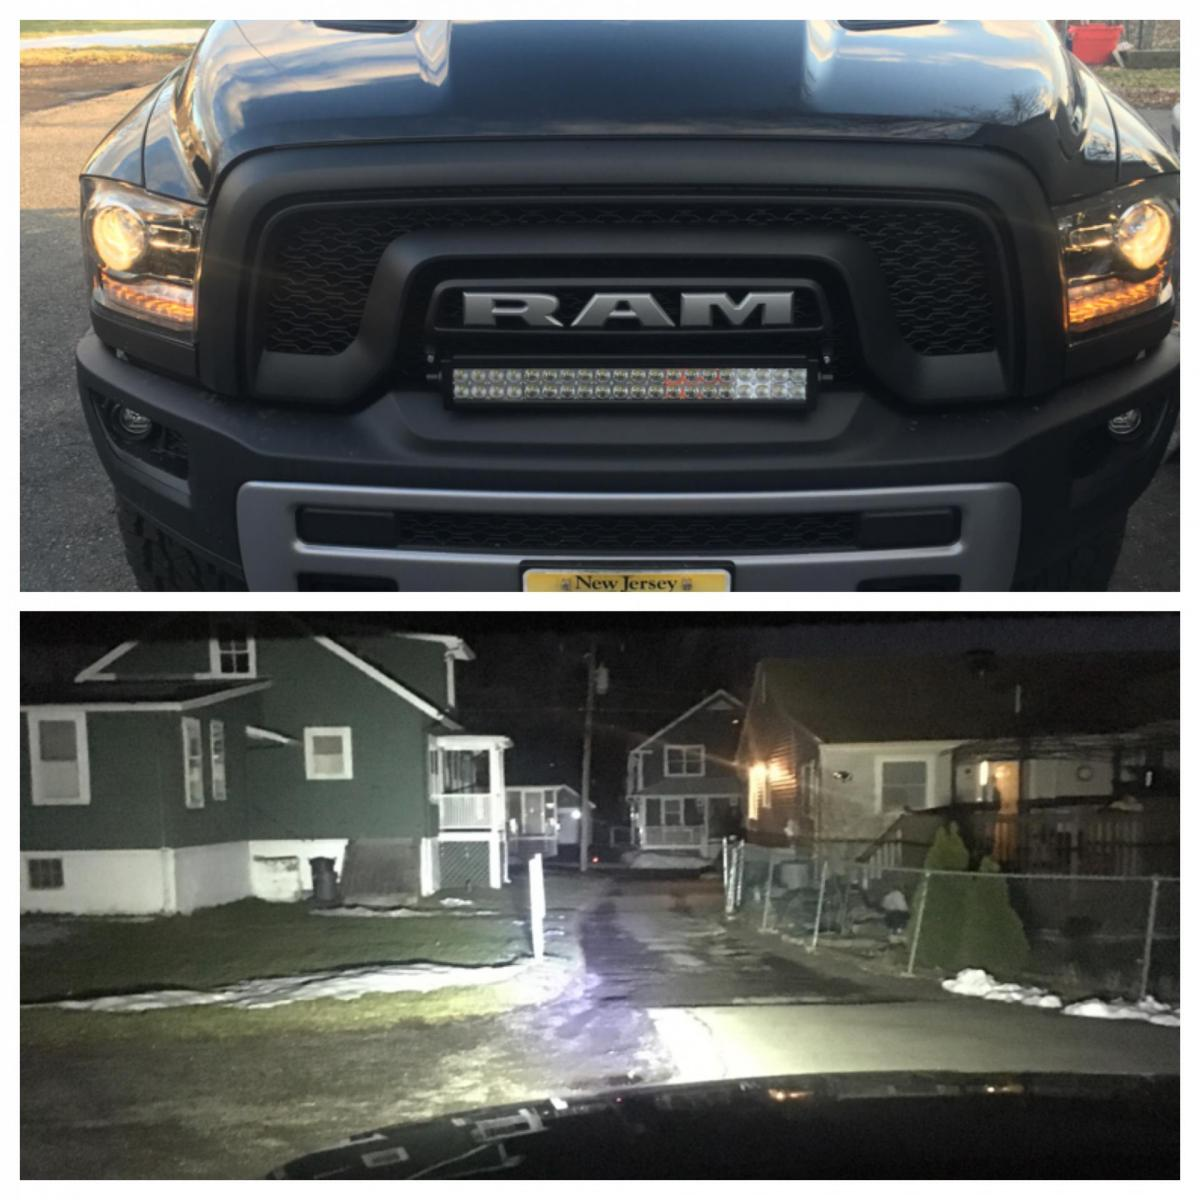 Led light bar page 2 ram rebel forum click image for larger version name image1455148559079g views 6474 size 1348 mozeypictures Image collections